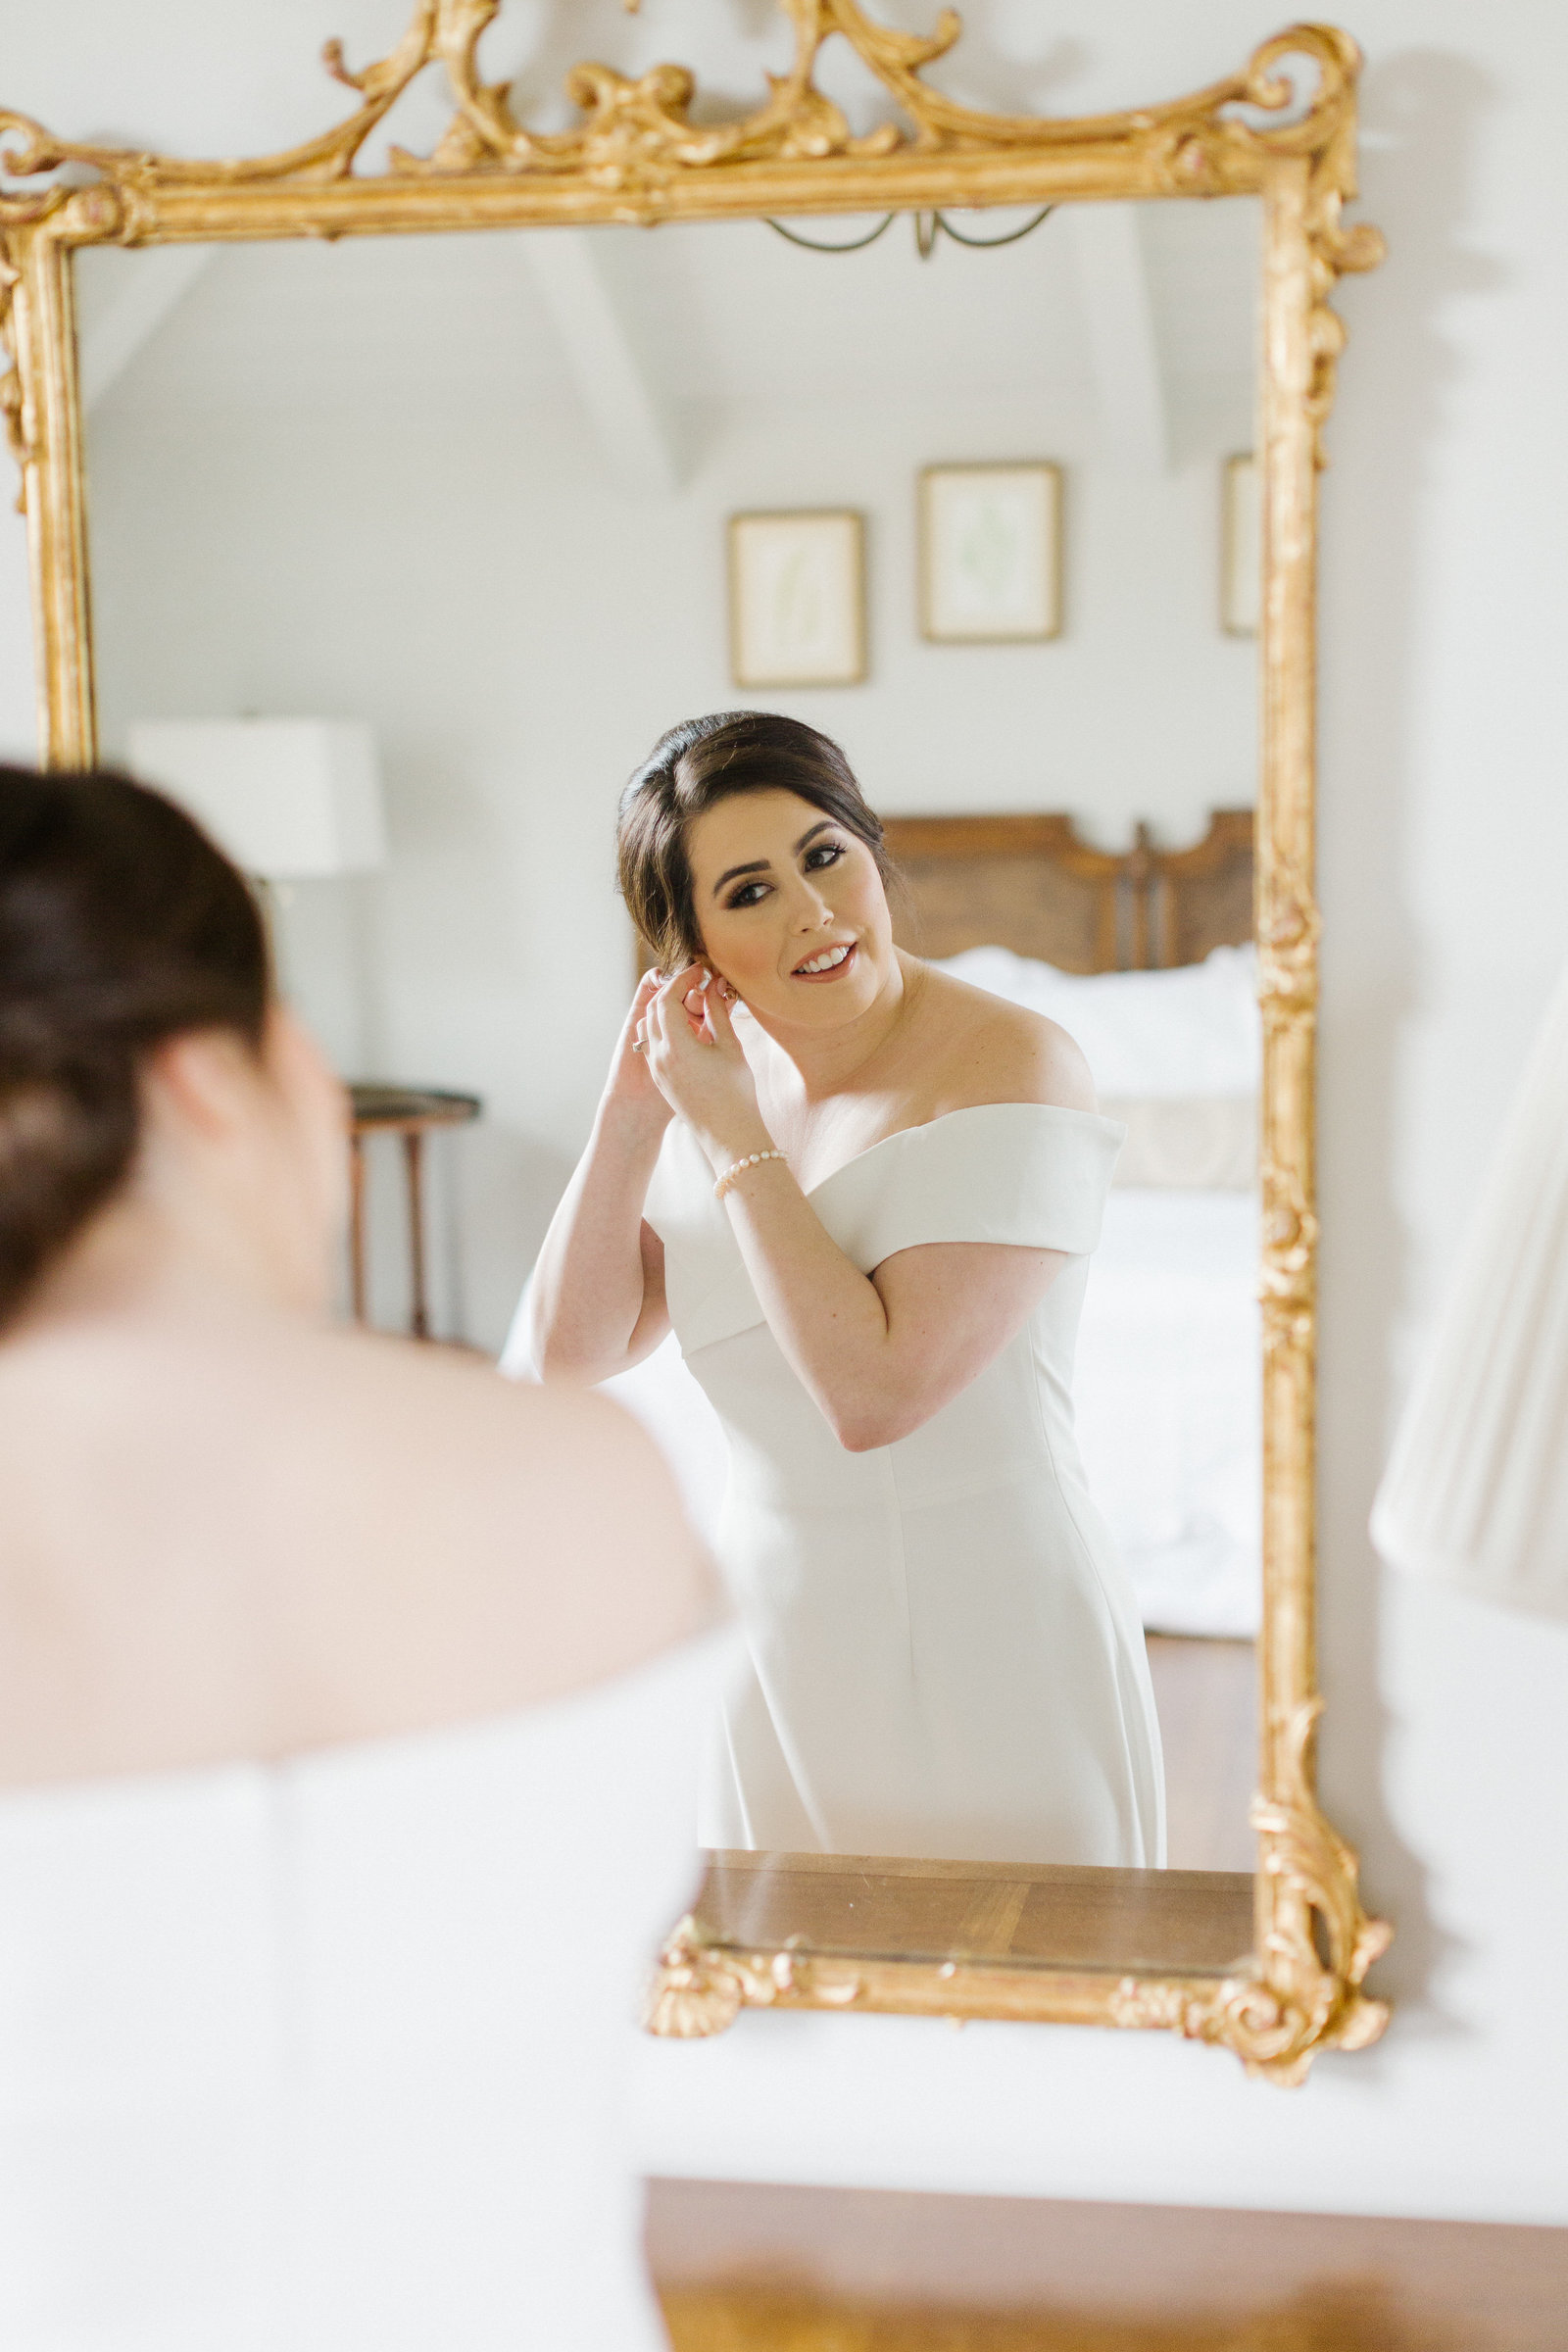 01_Bride-Getting-Ready_112